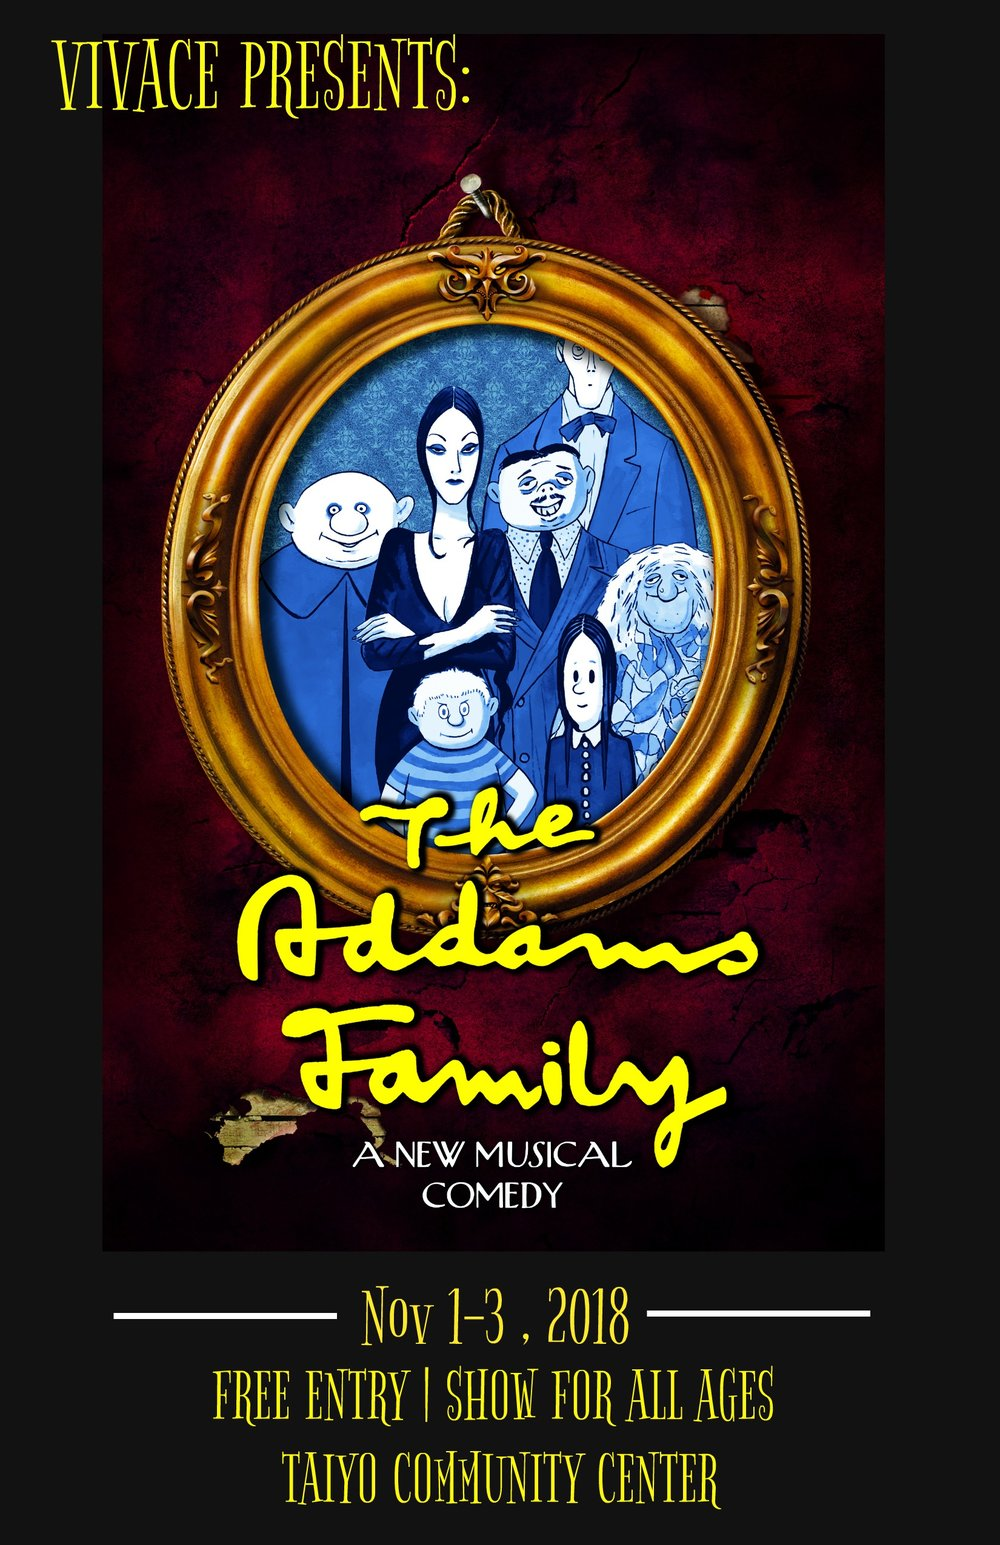 Vivace's Fall Musical production has been announced! We will be producing The Addams Family in November! If you are looking to get involved/audition/watch the show, follow us on all our social media handles ( Facebook ,  Instagram ) and check out the  Addams Family Production Page  for more updates!